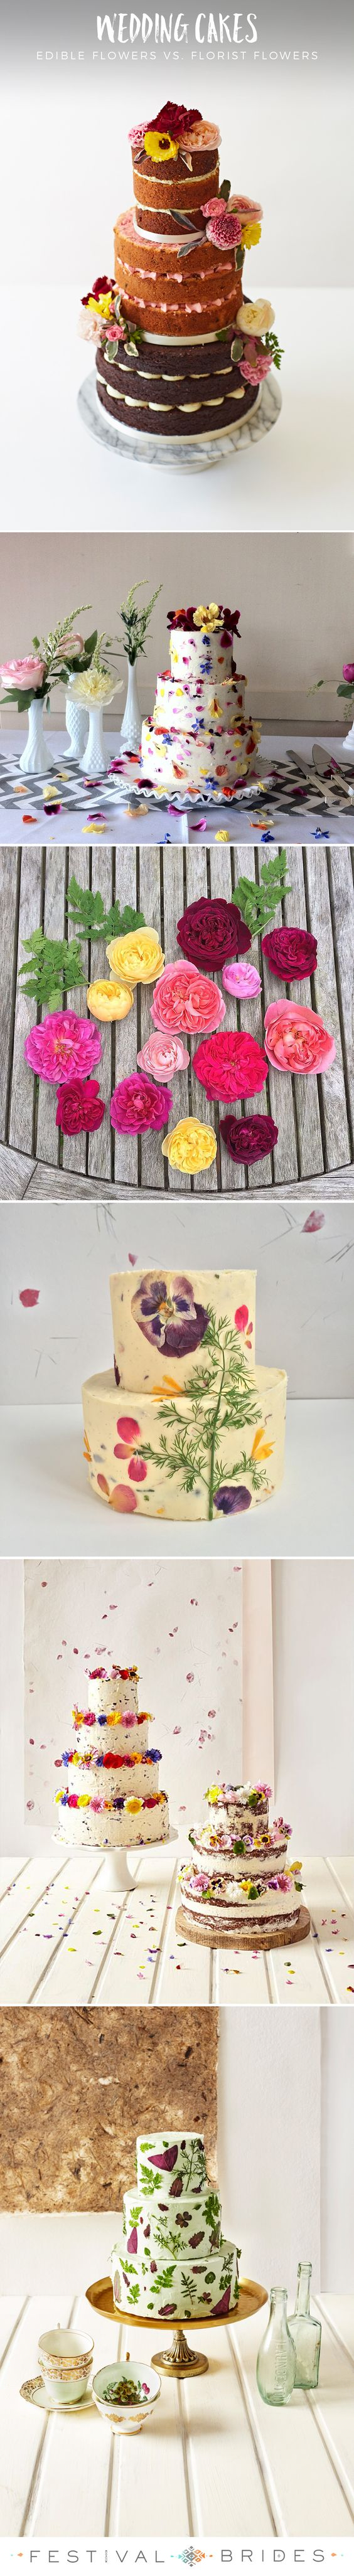 FESTIVAL BRIDES | Decorating #wedding #cakes with edible flowers vs. florist flowers with Bee's Bakery! #floralweddingcake